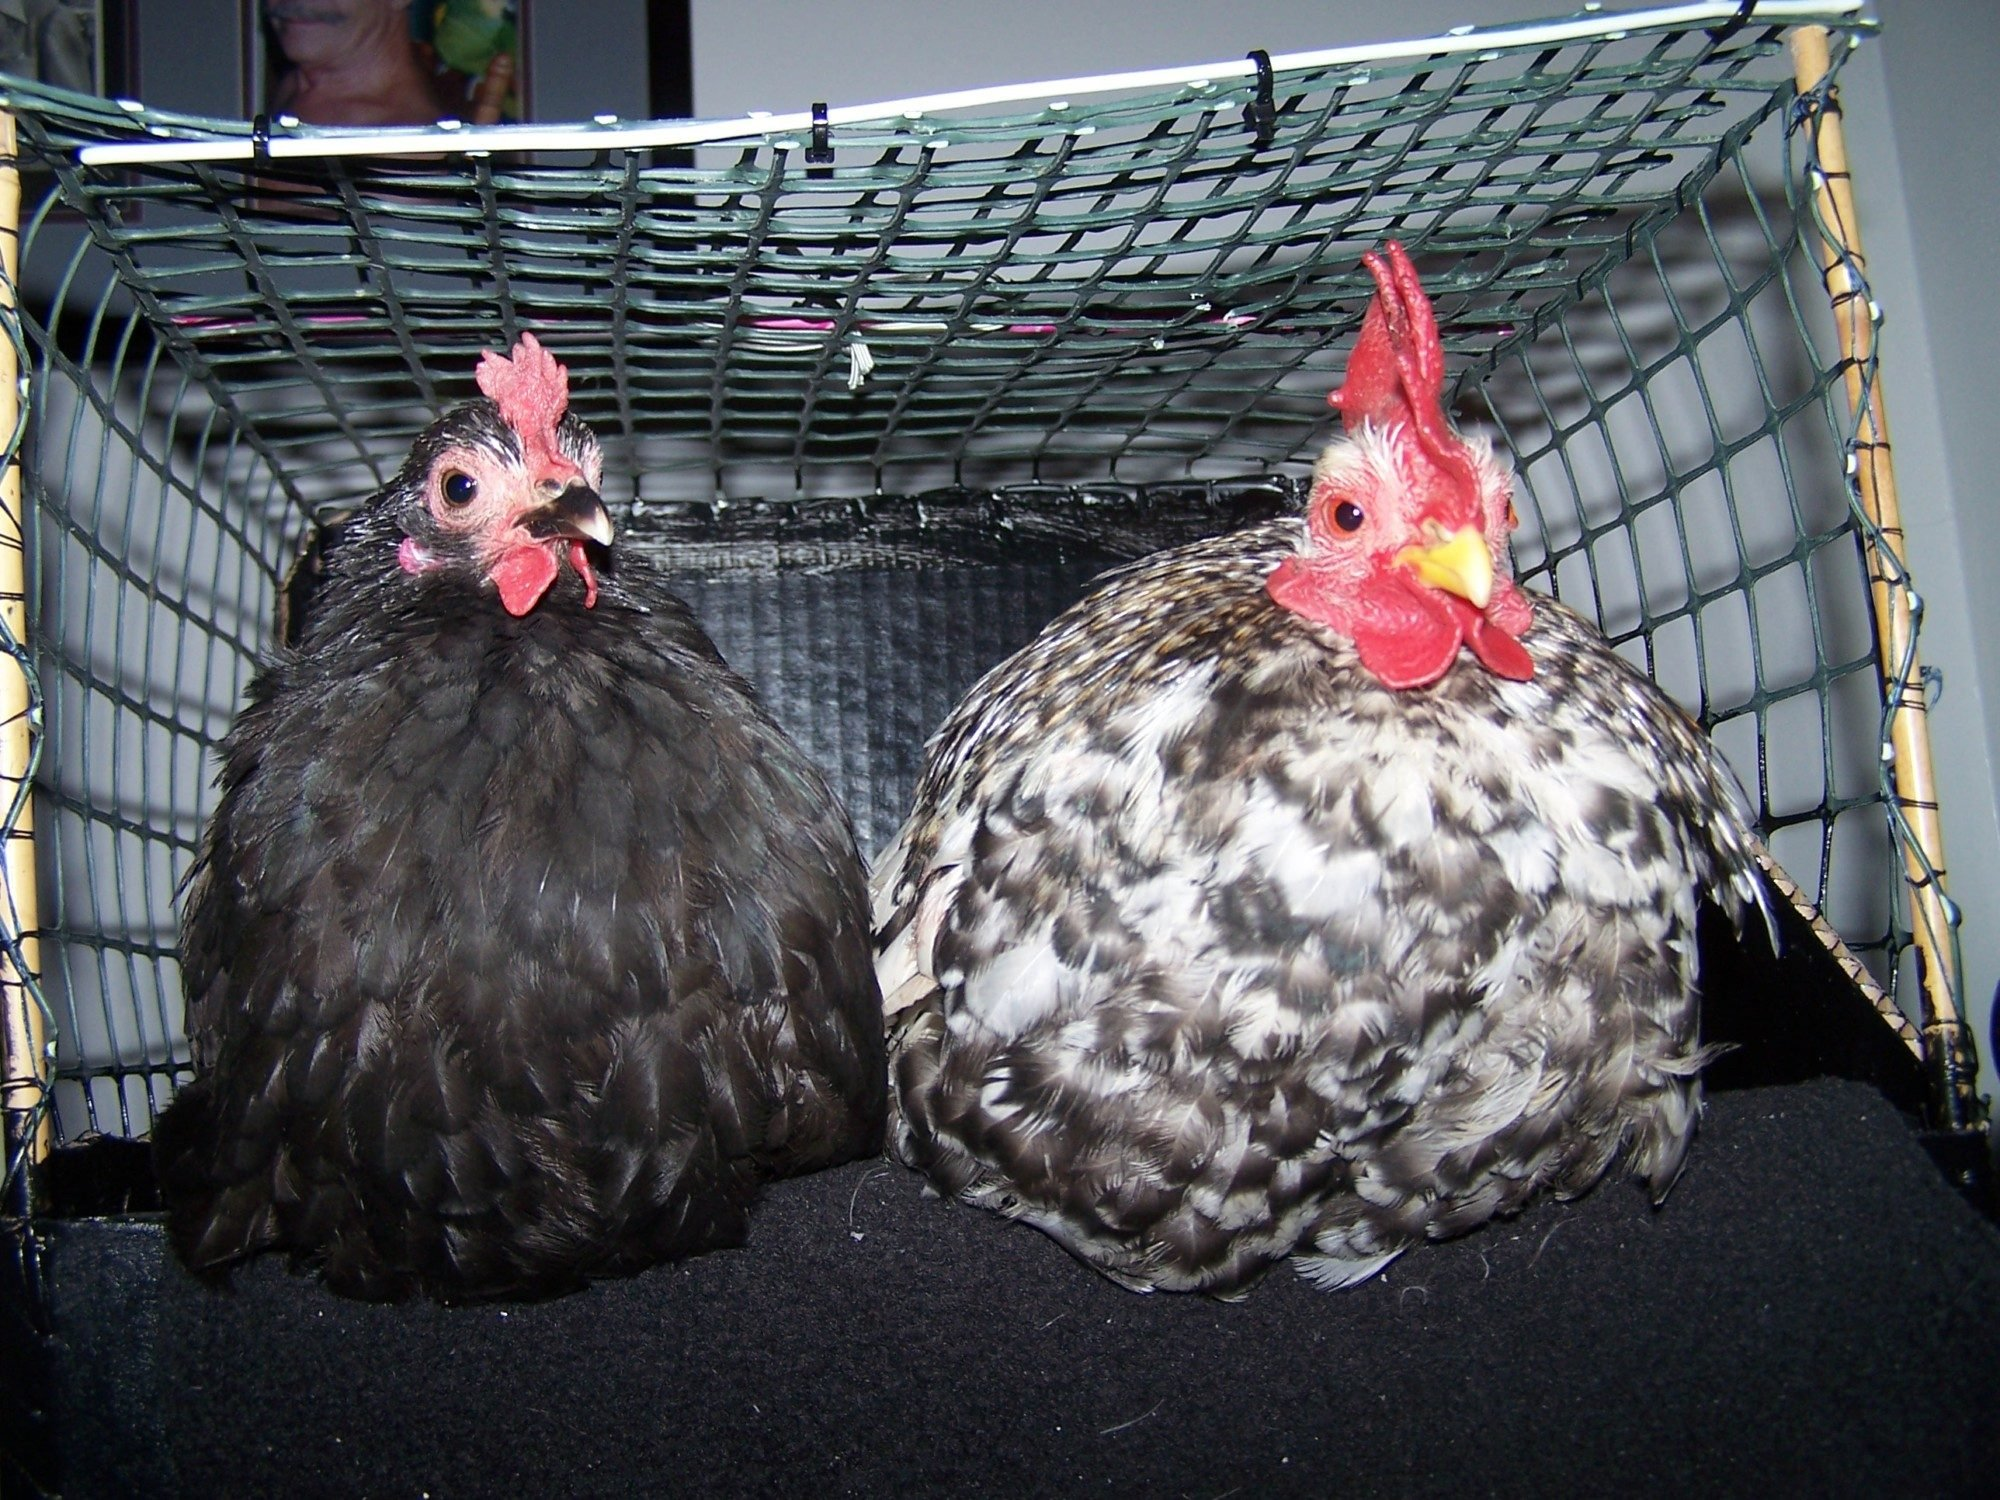 froggiesheins's photos in people with house chickens